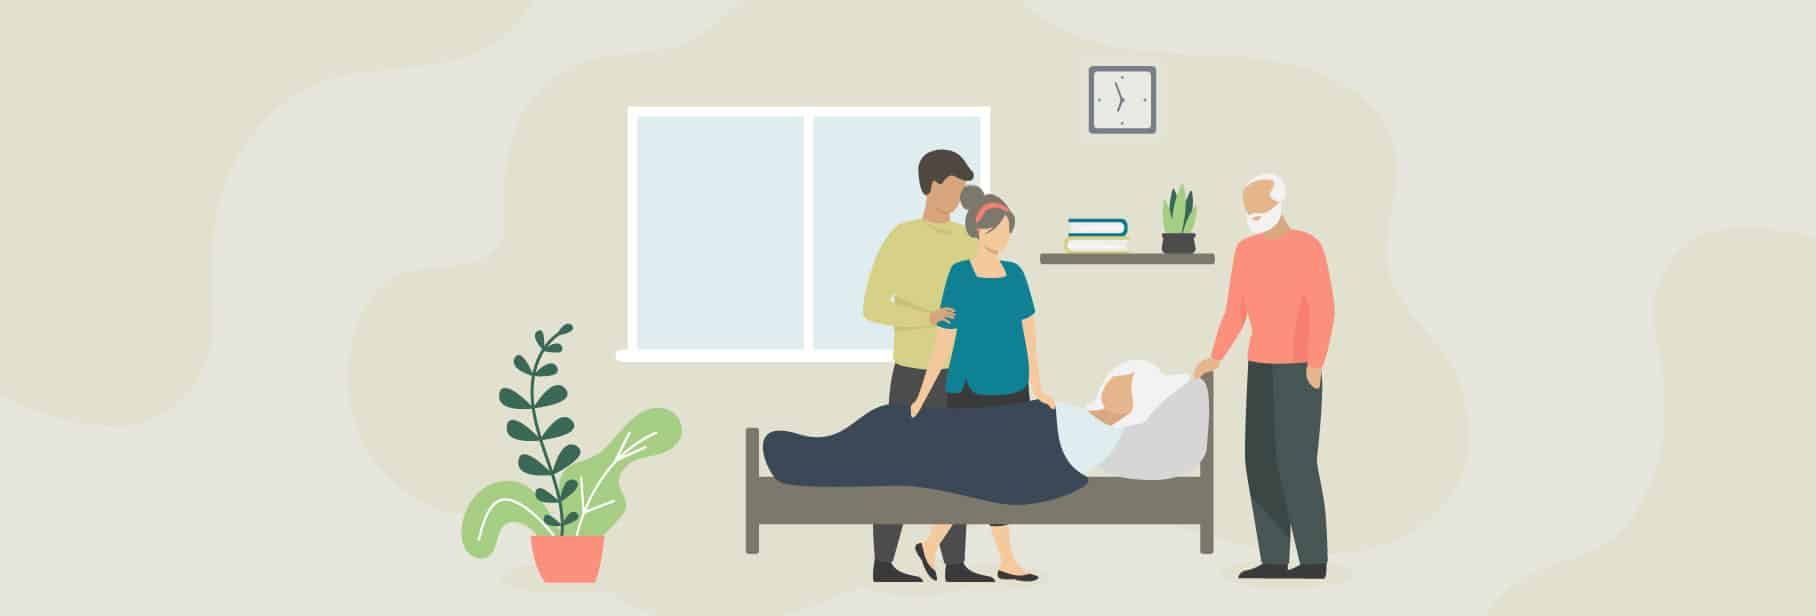 Hospice Care for Elderly Seniors | Is There Hospice Care Near Me?